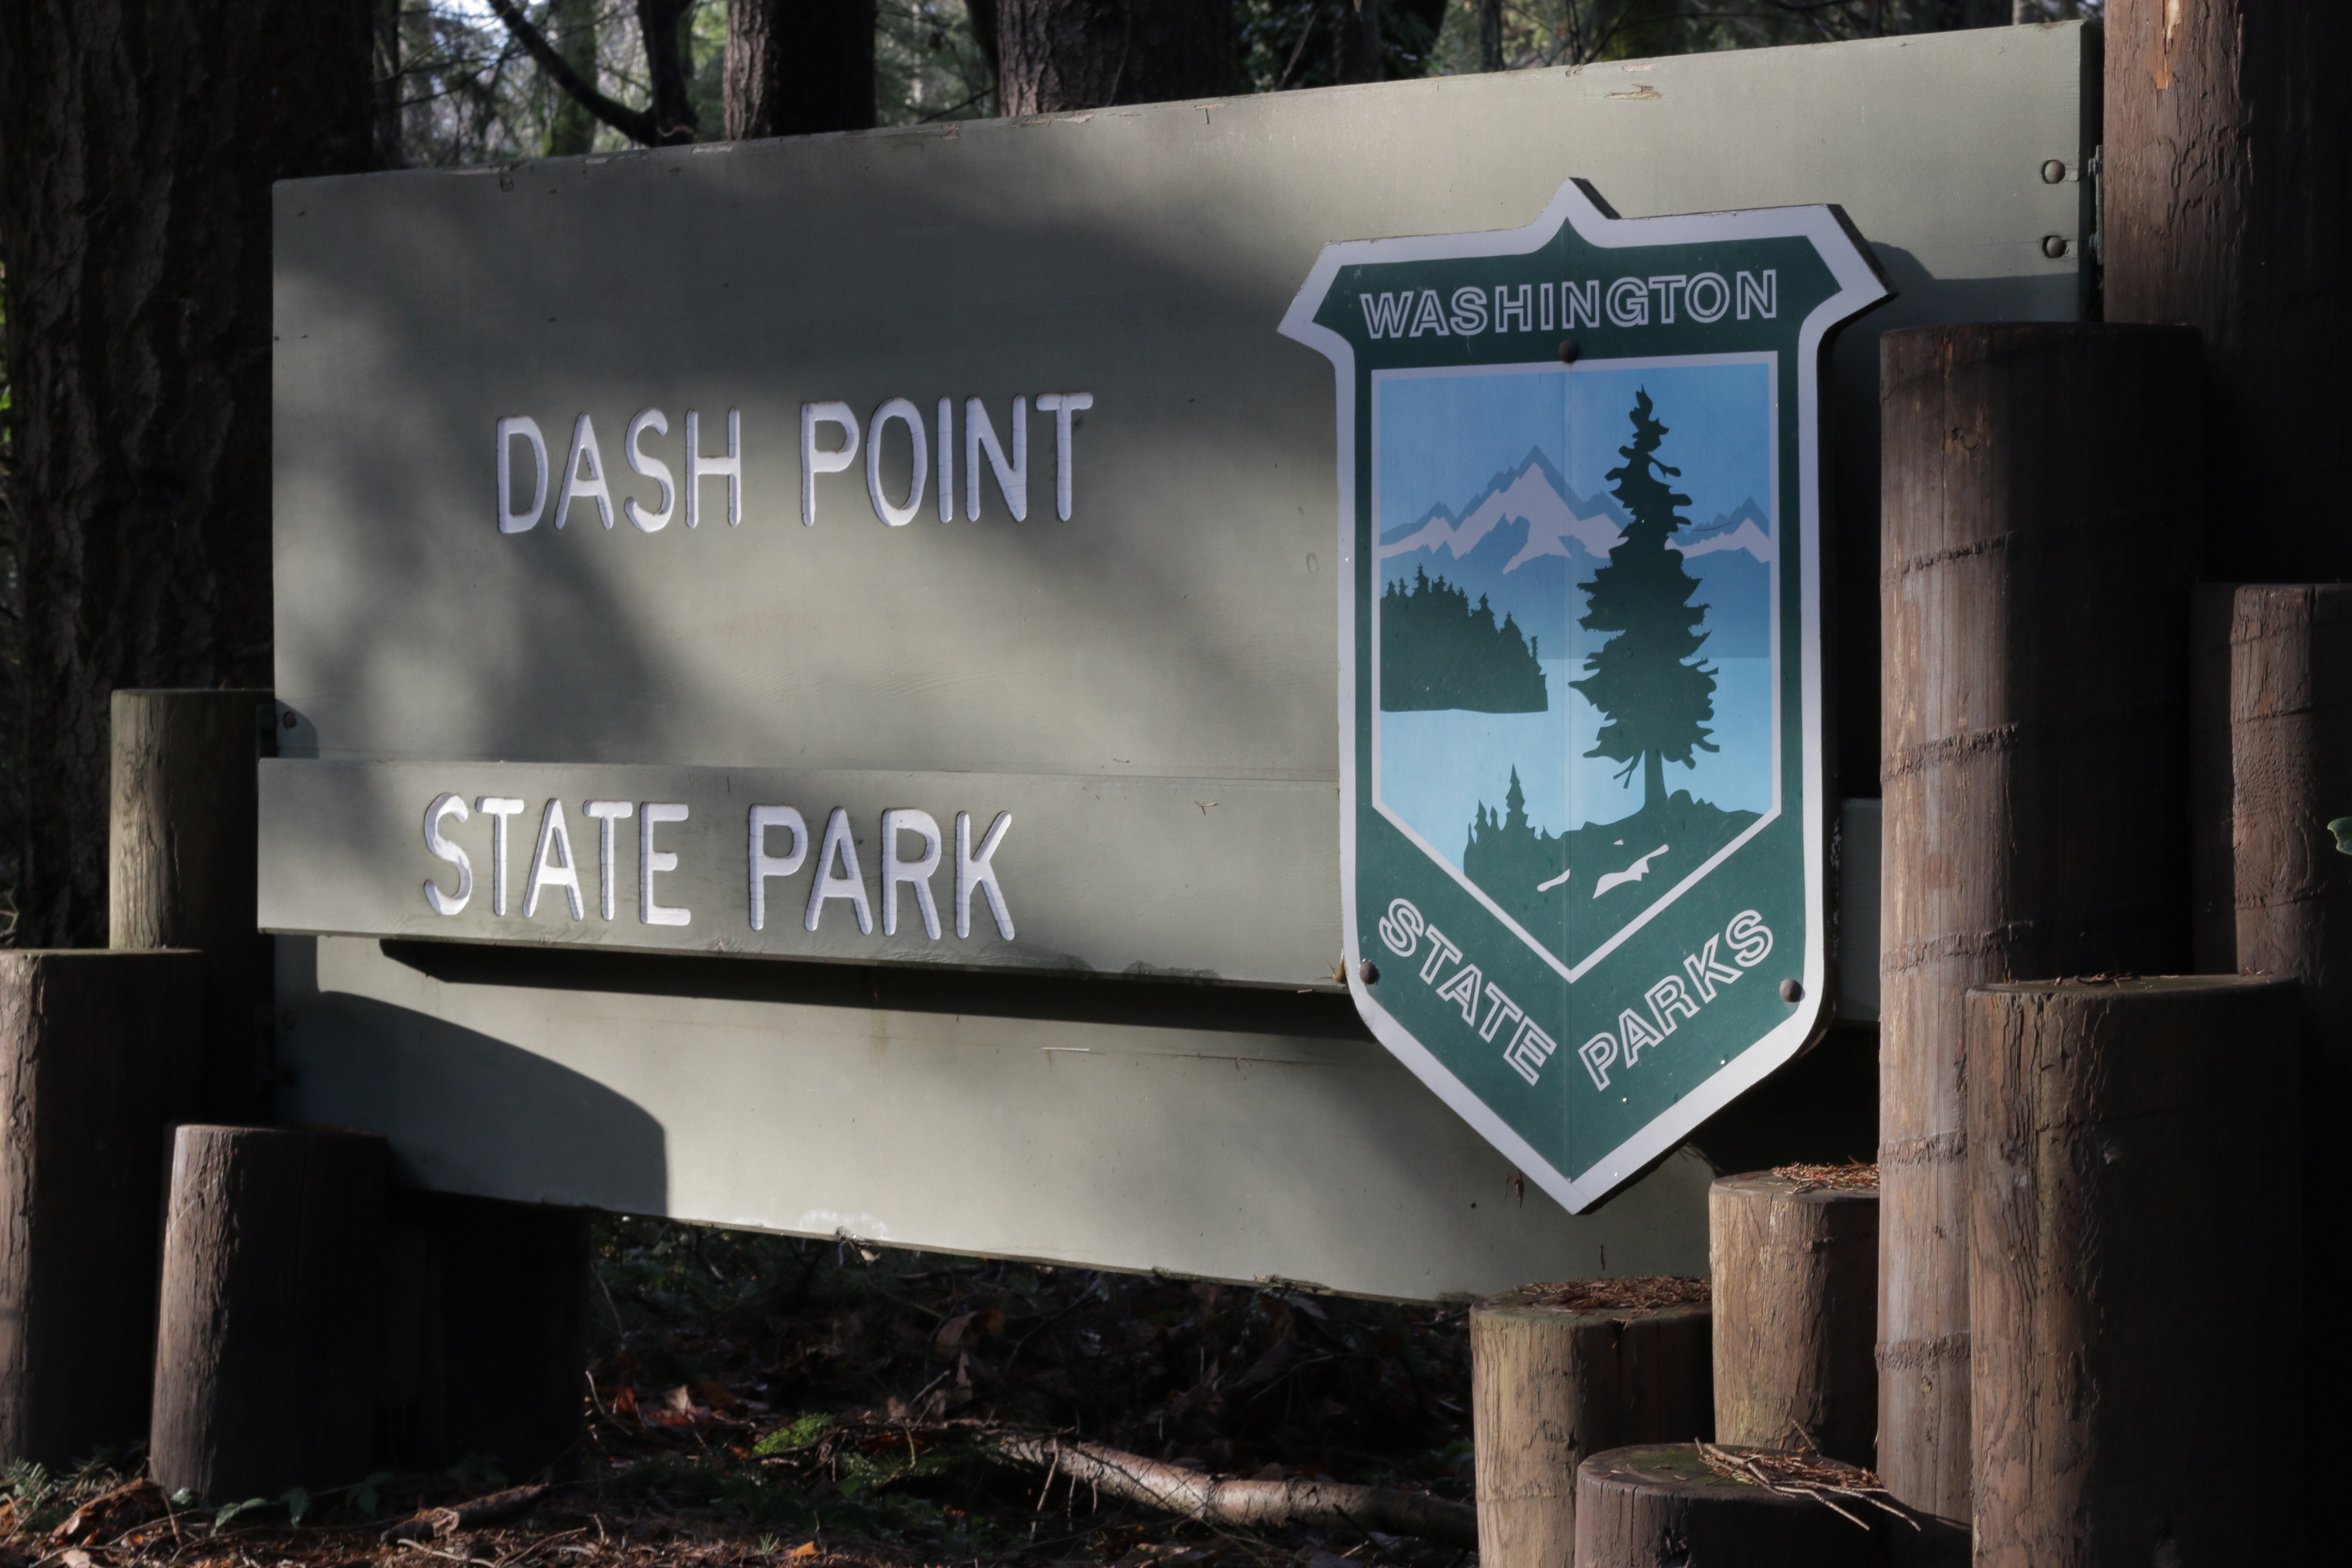 Dash Point - The K Group Real Estate Team